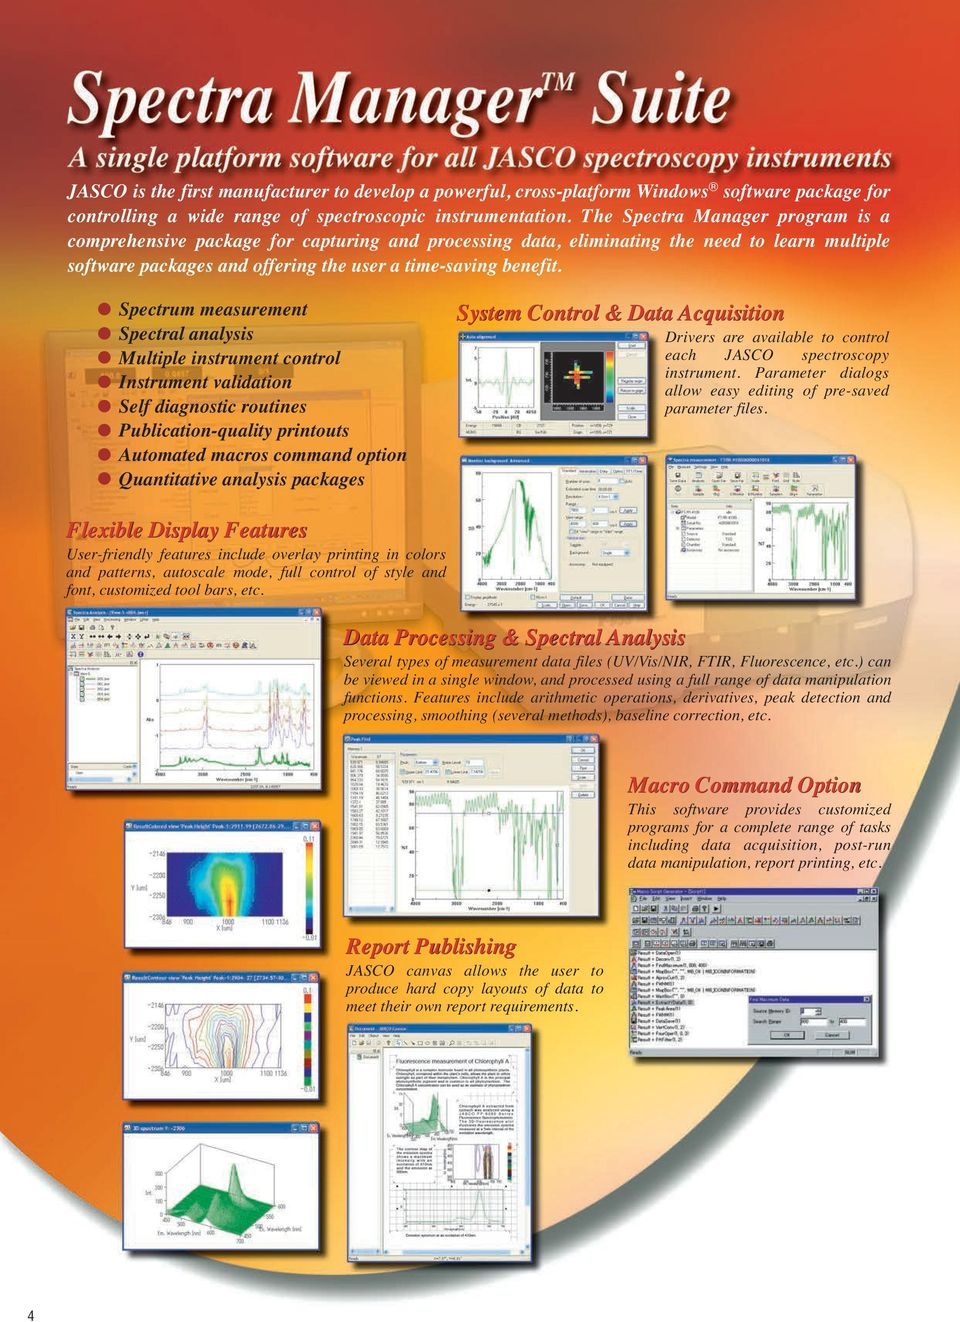 Spectra Manager Software Suite FT-IR Spectrometers IR Imaging System